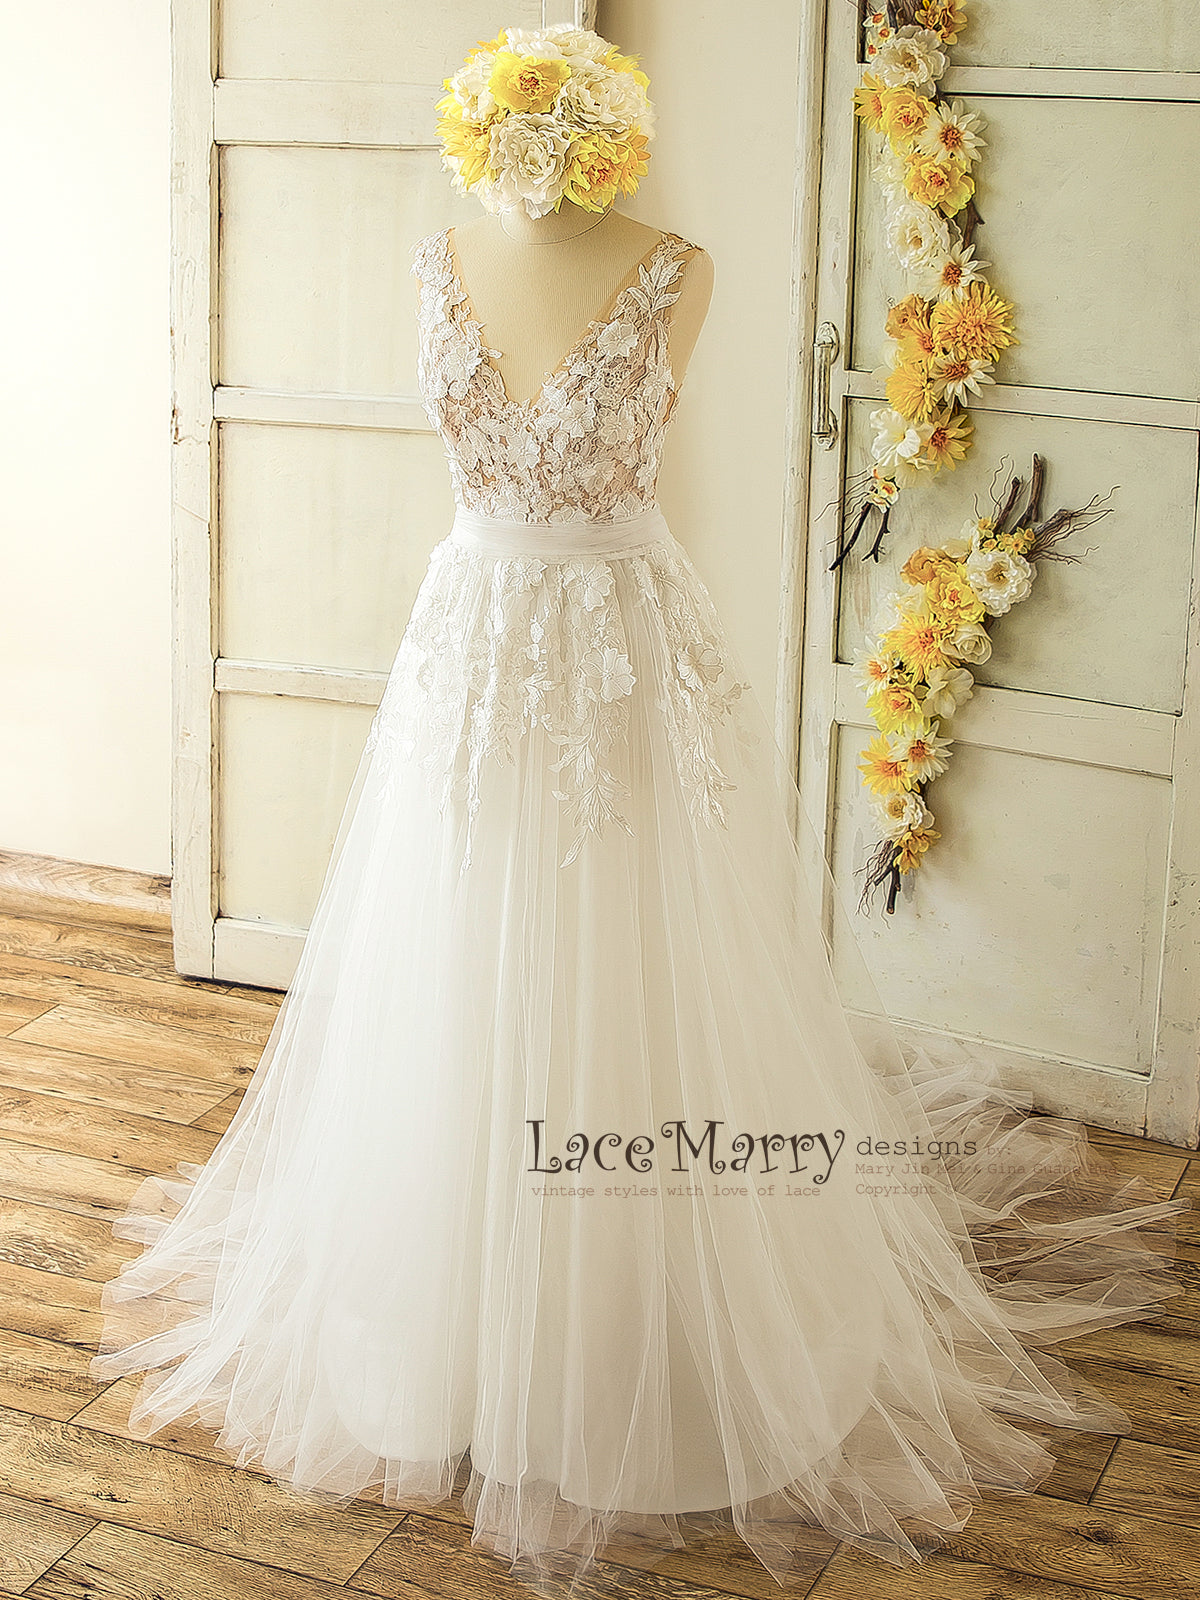 cc14f2e368b LaceMarry - Handmade Wedding Dresses with Love of Lace